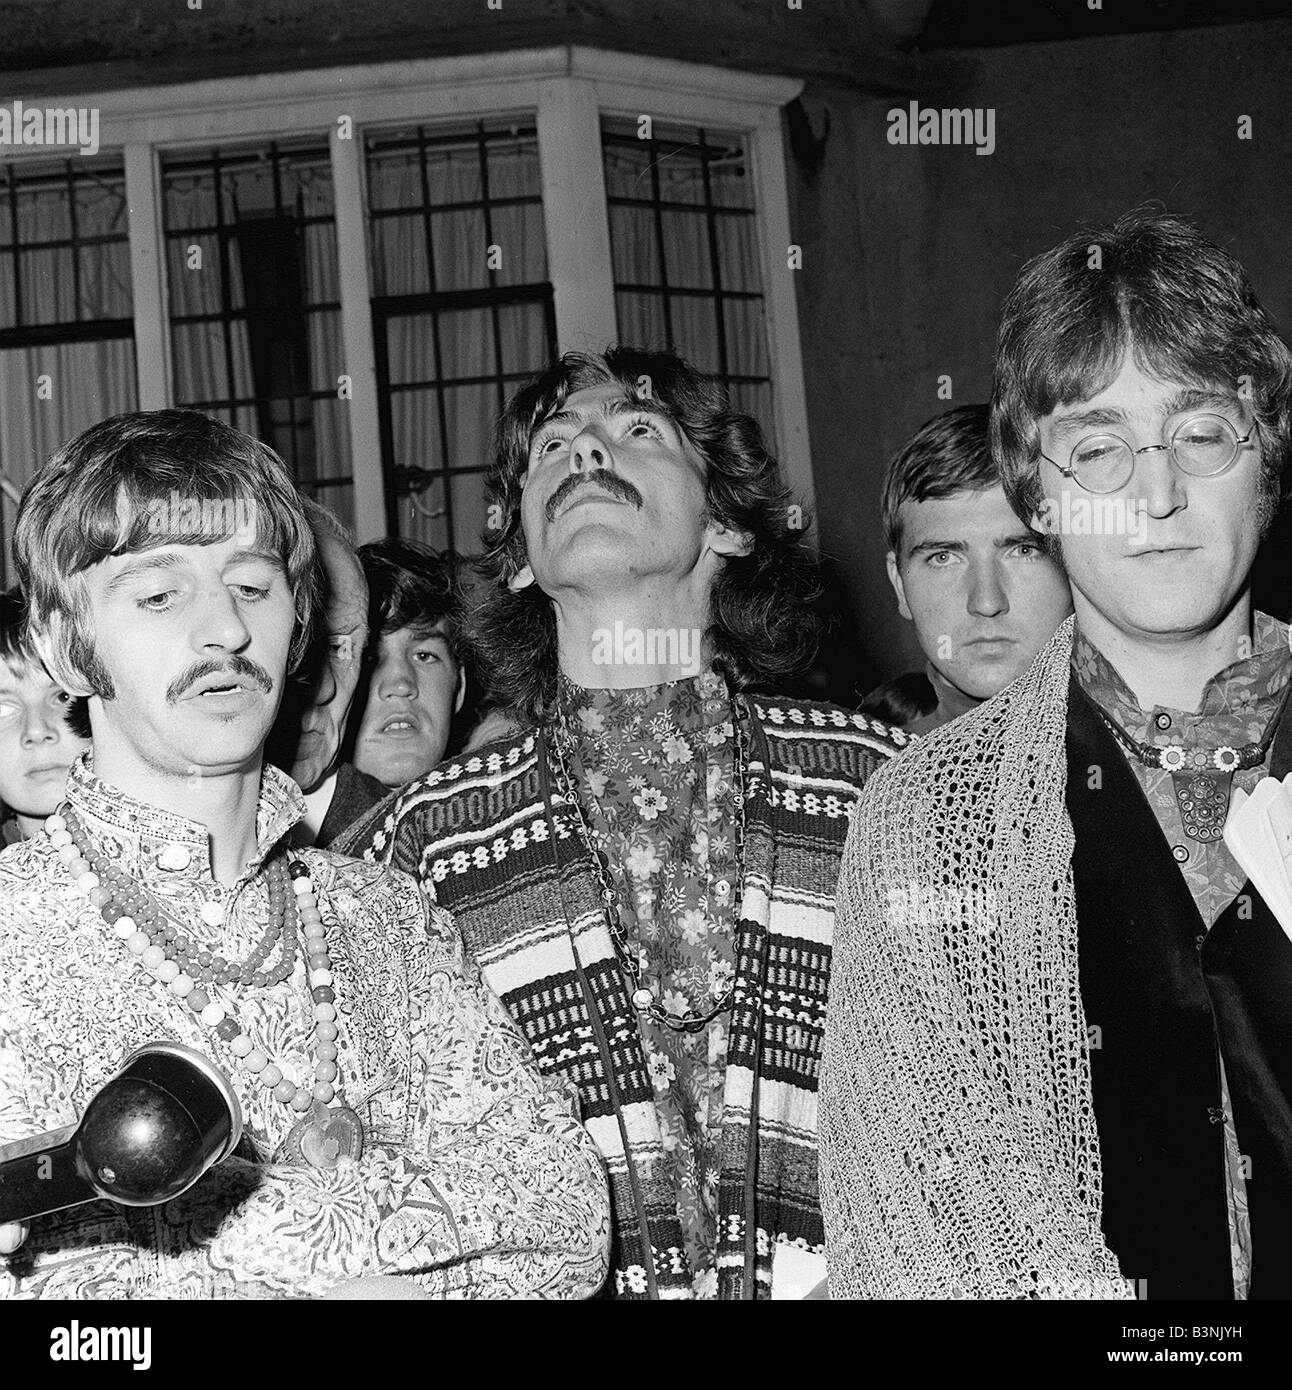 The Beatles August 1967 John Lennon Ringo Starr And George Harrison Answer Questions For Press